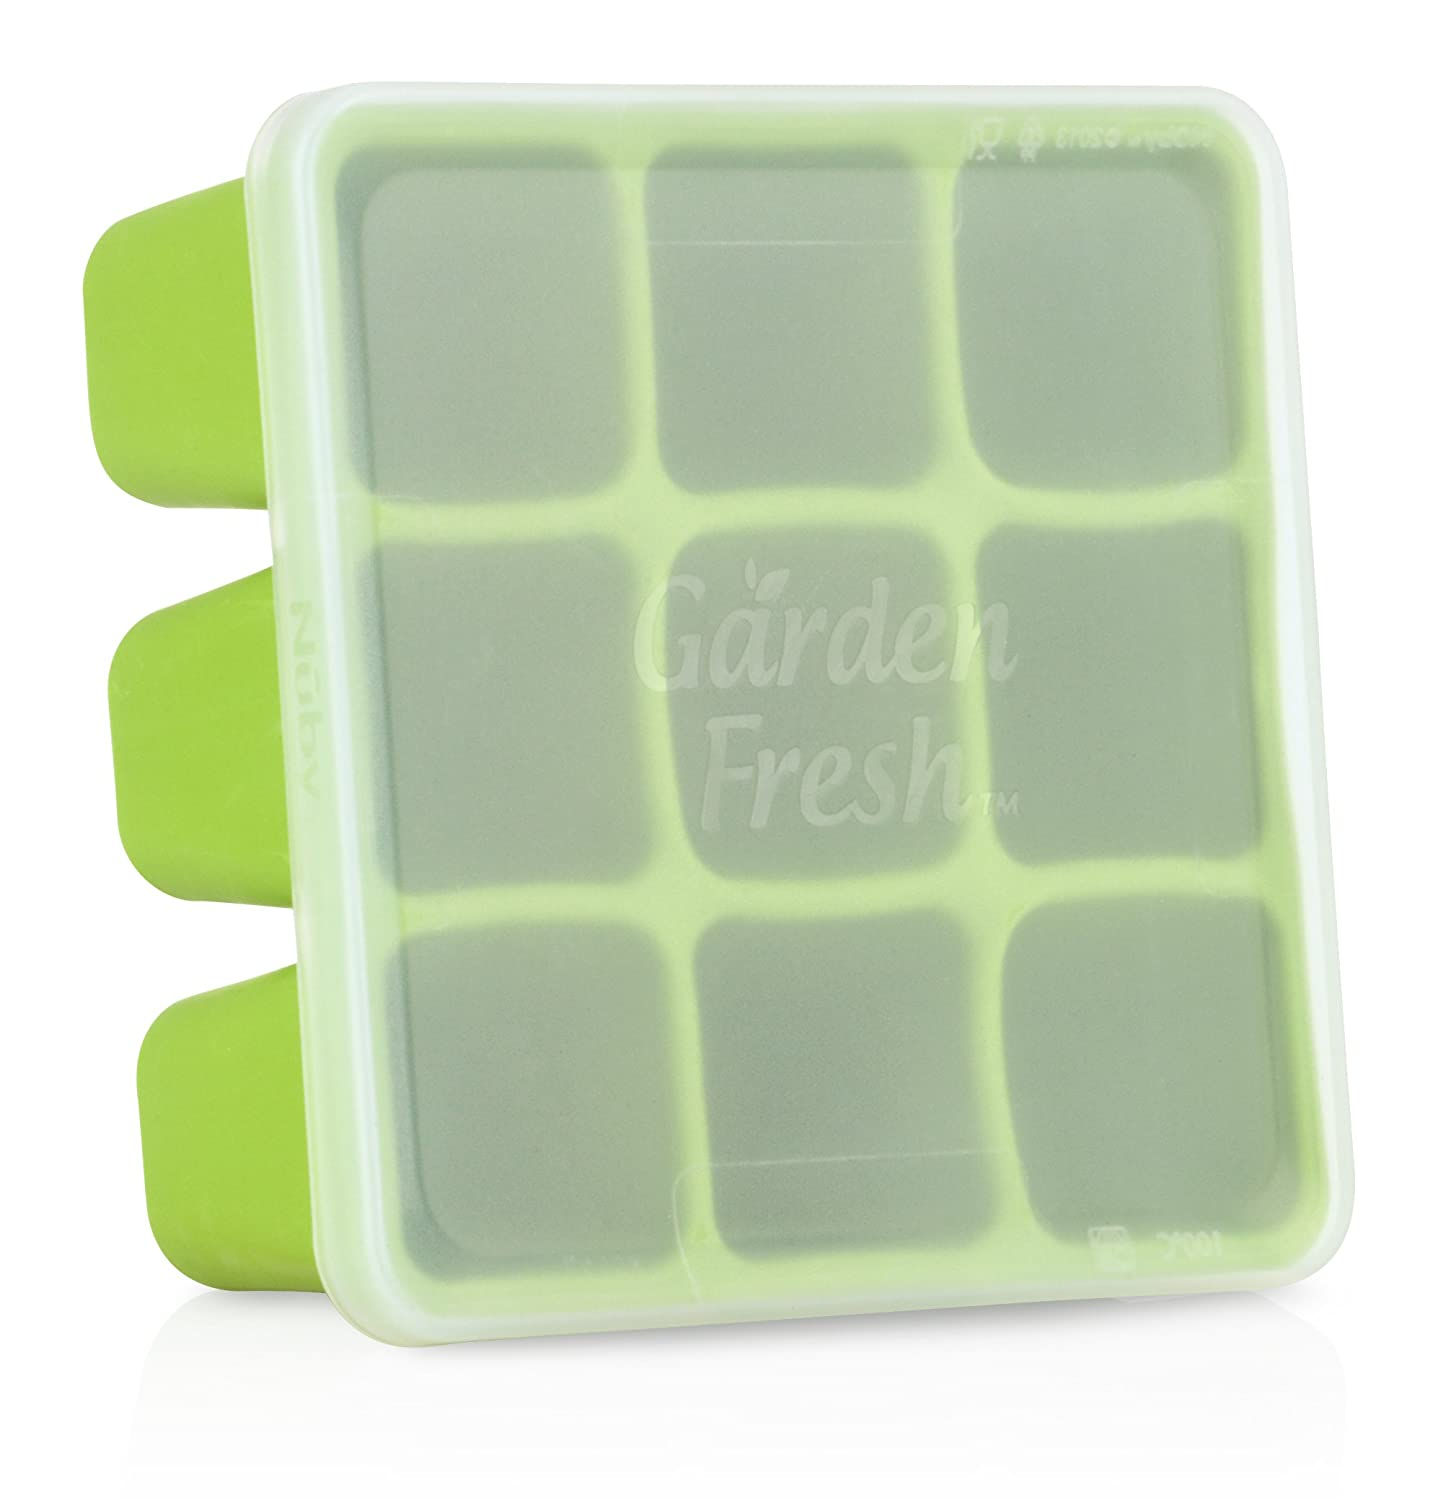 Nuby Garden Fresh Easy Pop Feezer Tray Nûby 5434